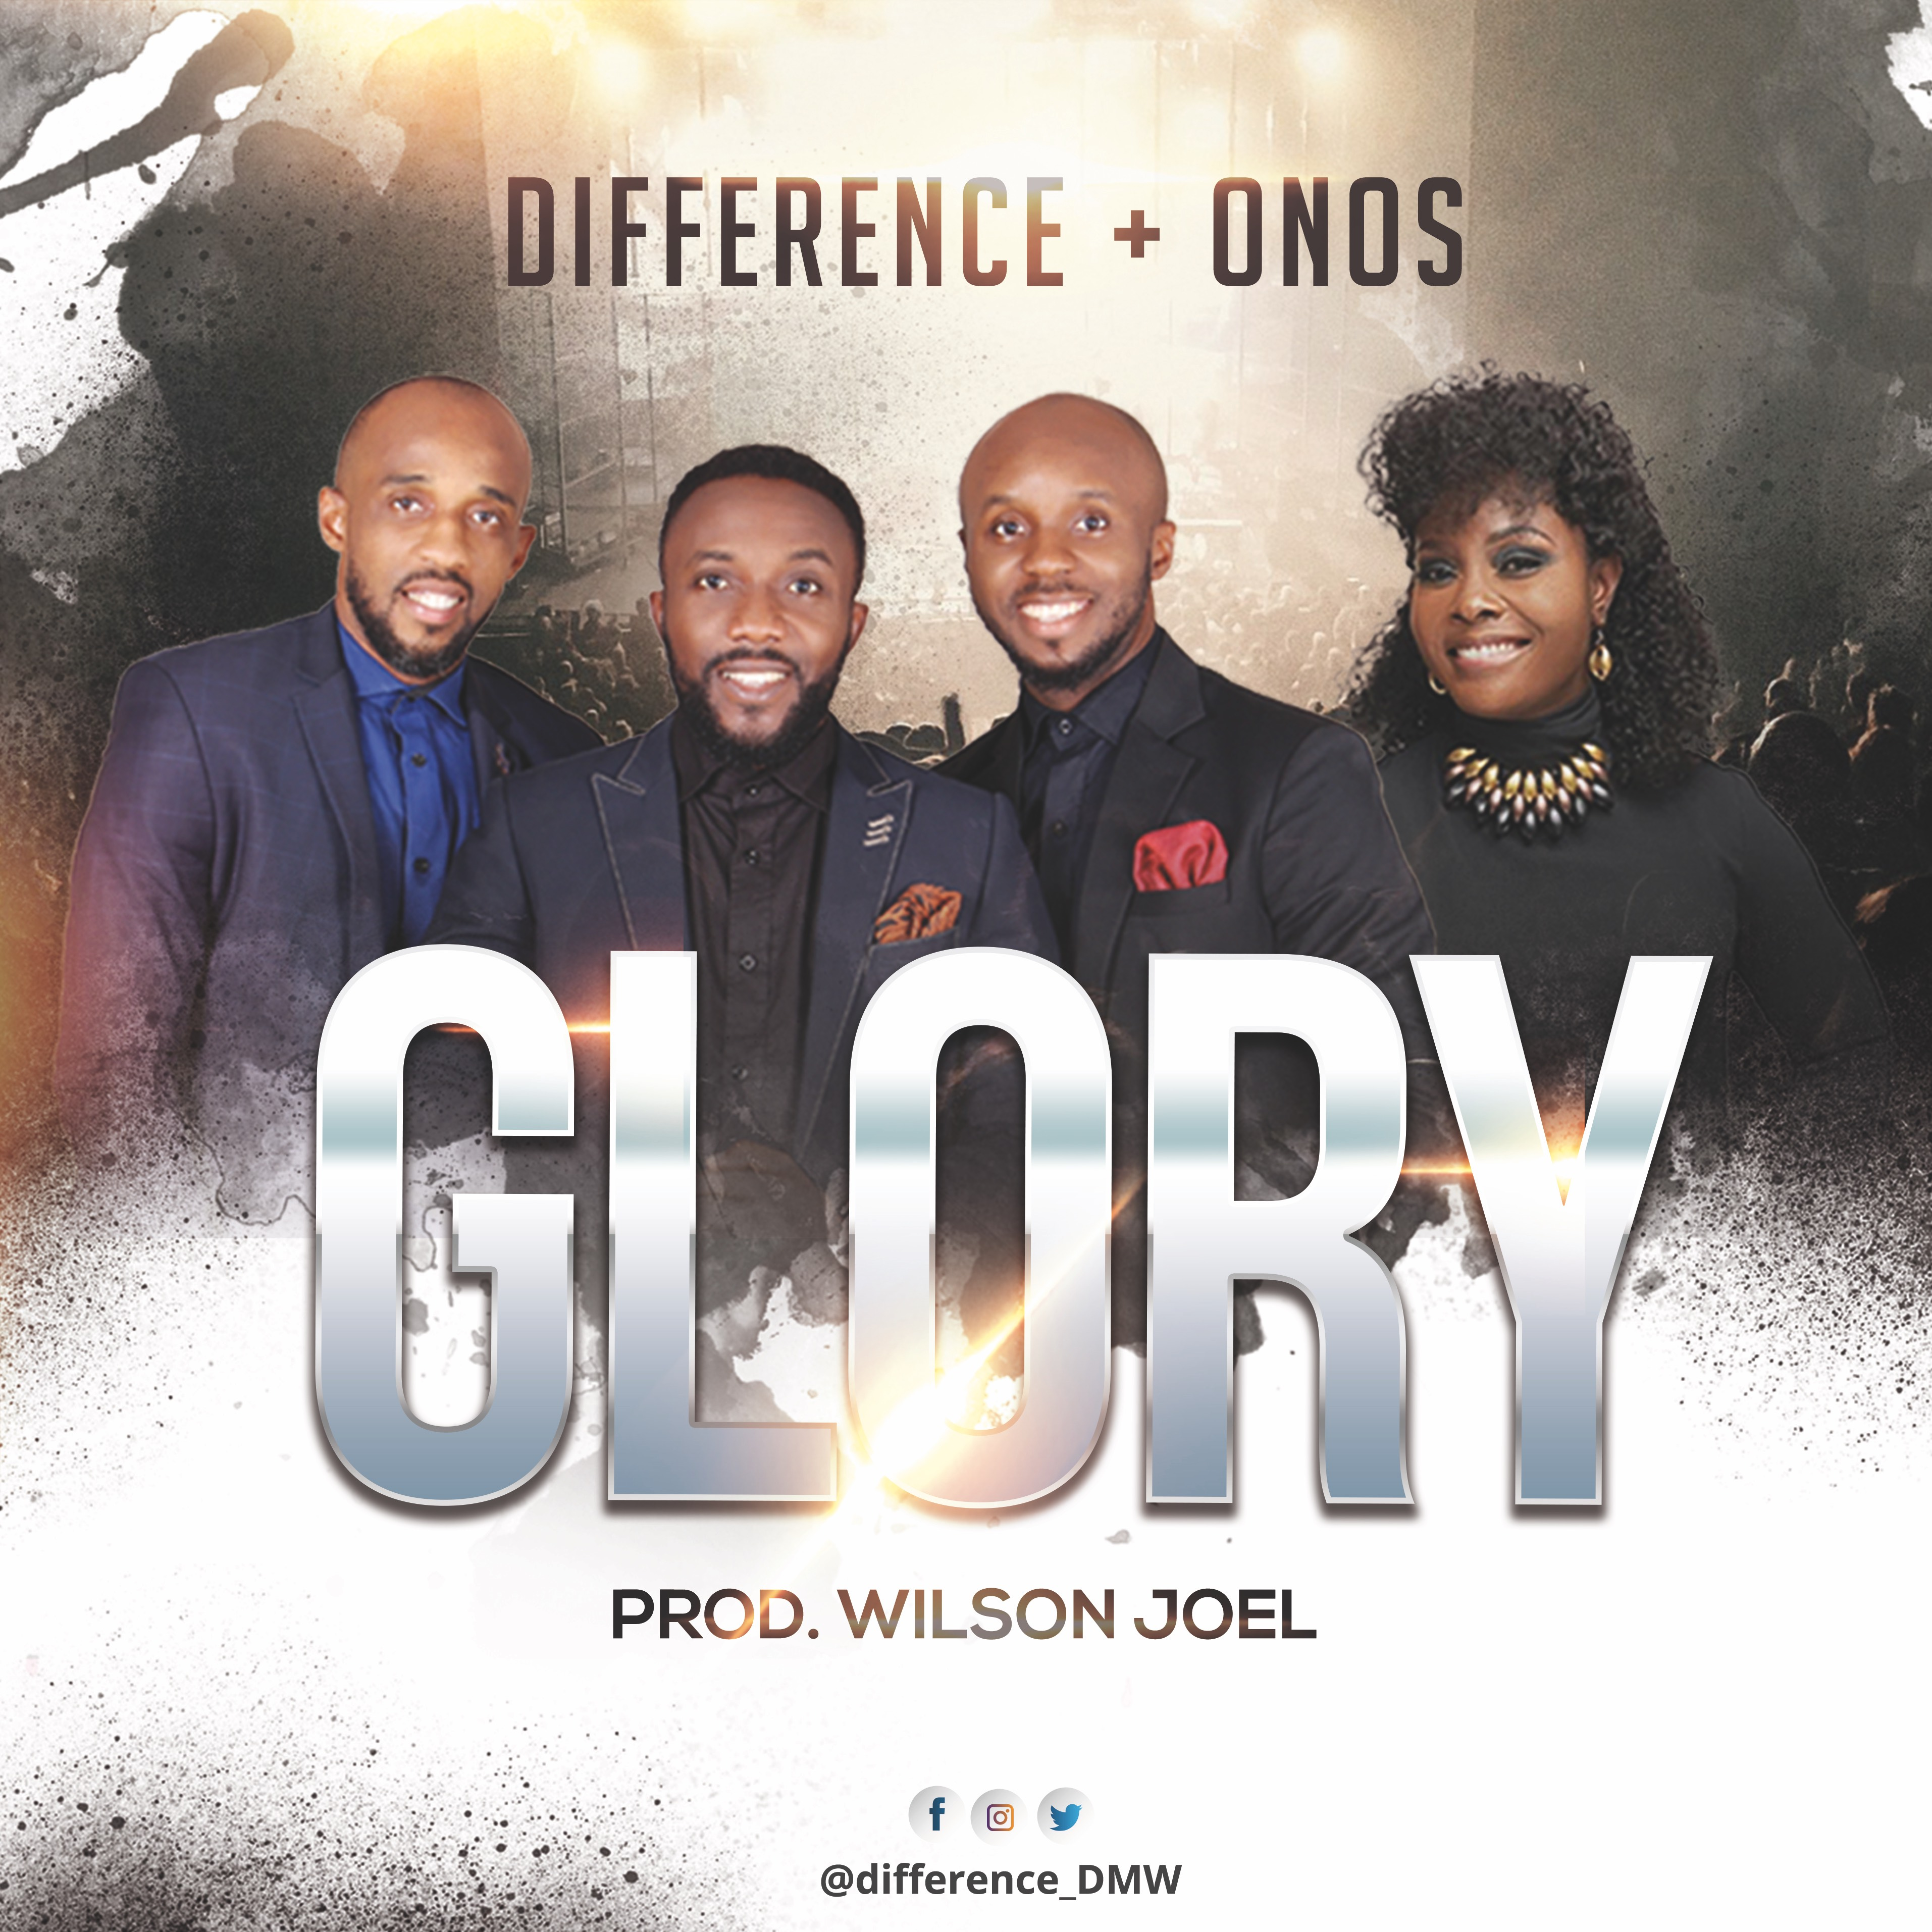 Difference Onos Glory